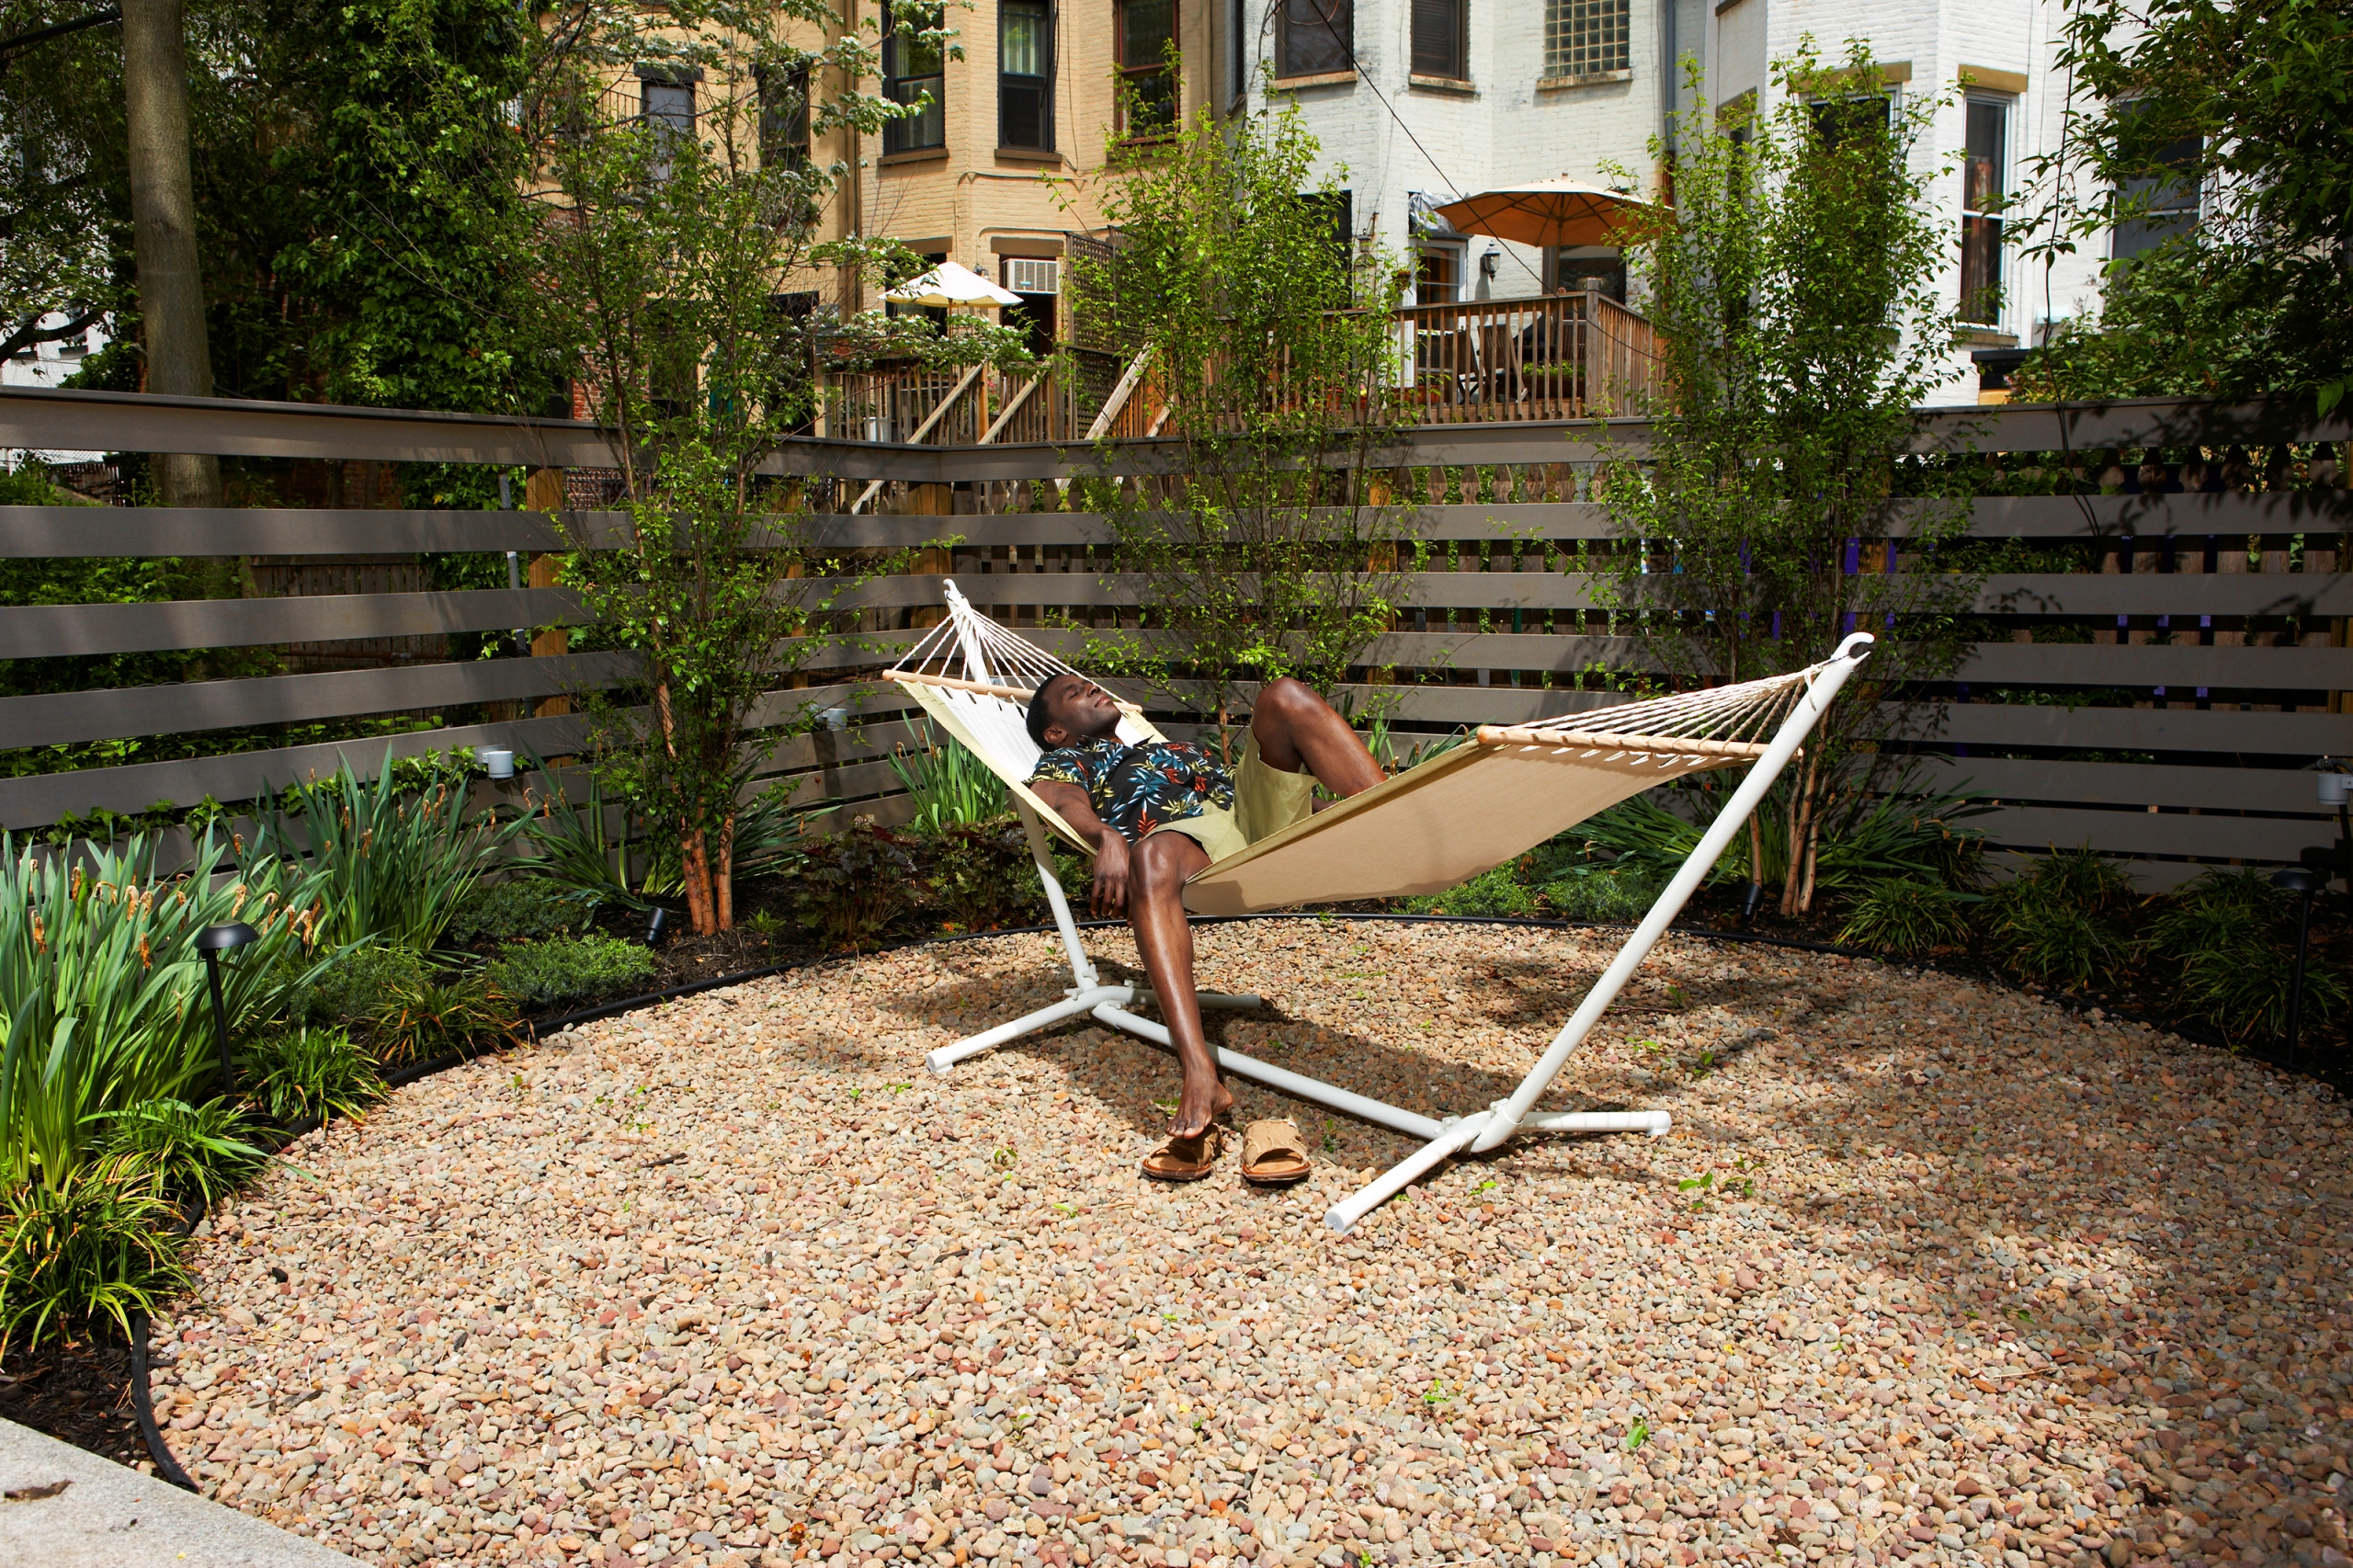 Man relaxing on a hammock in an urban back yard